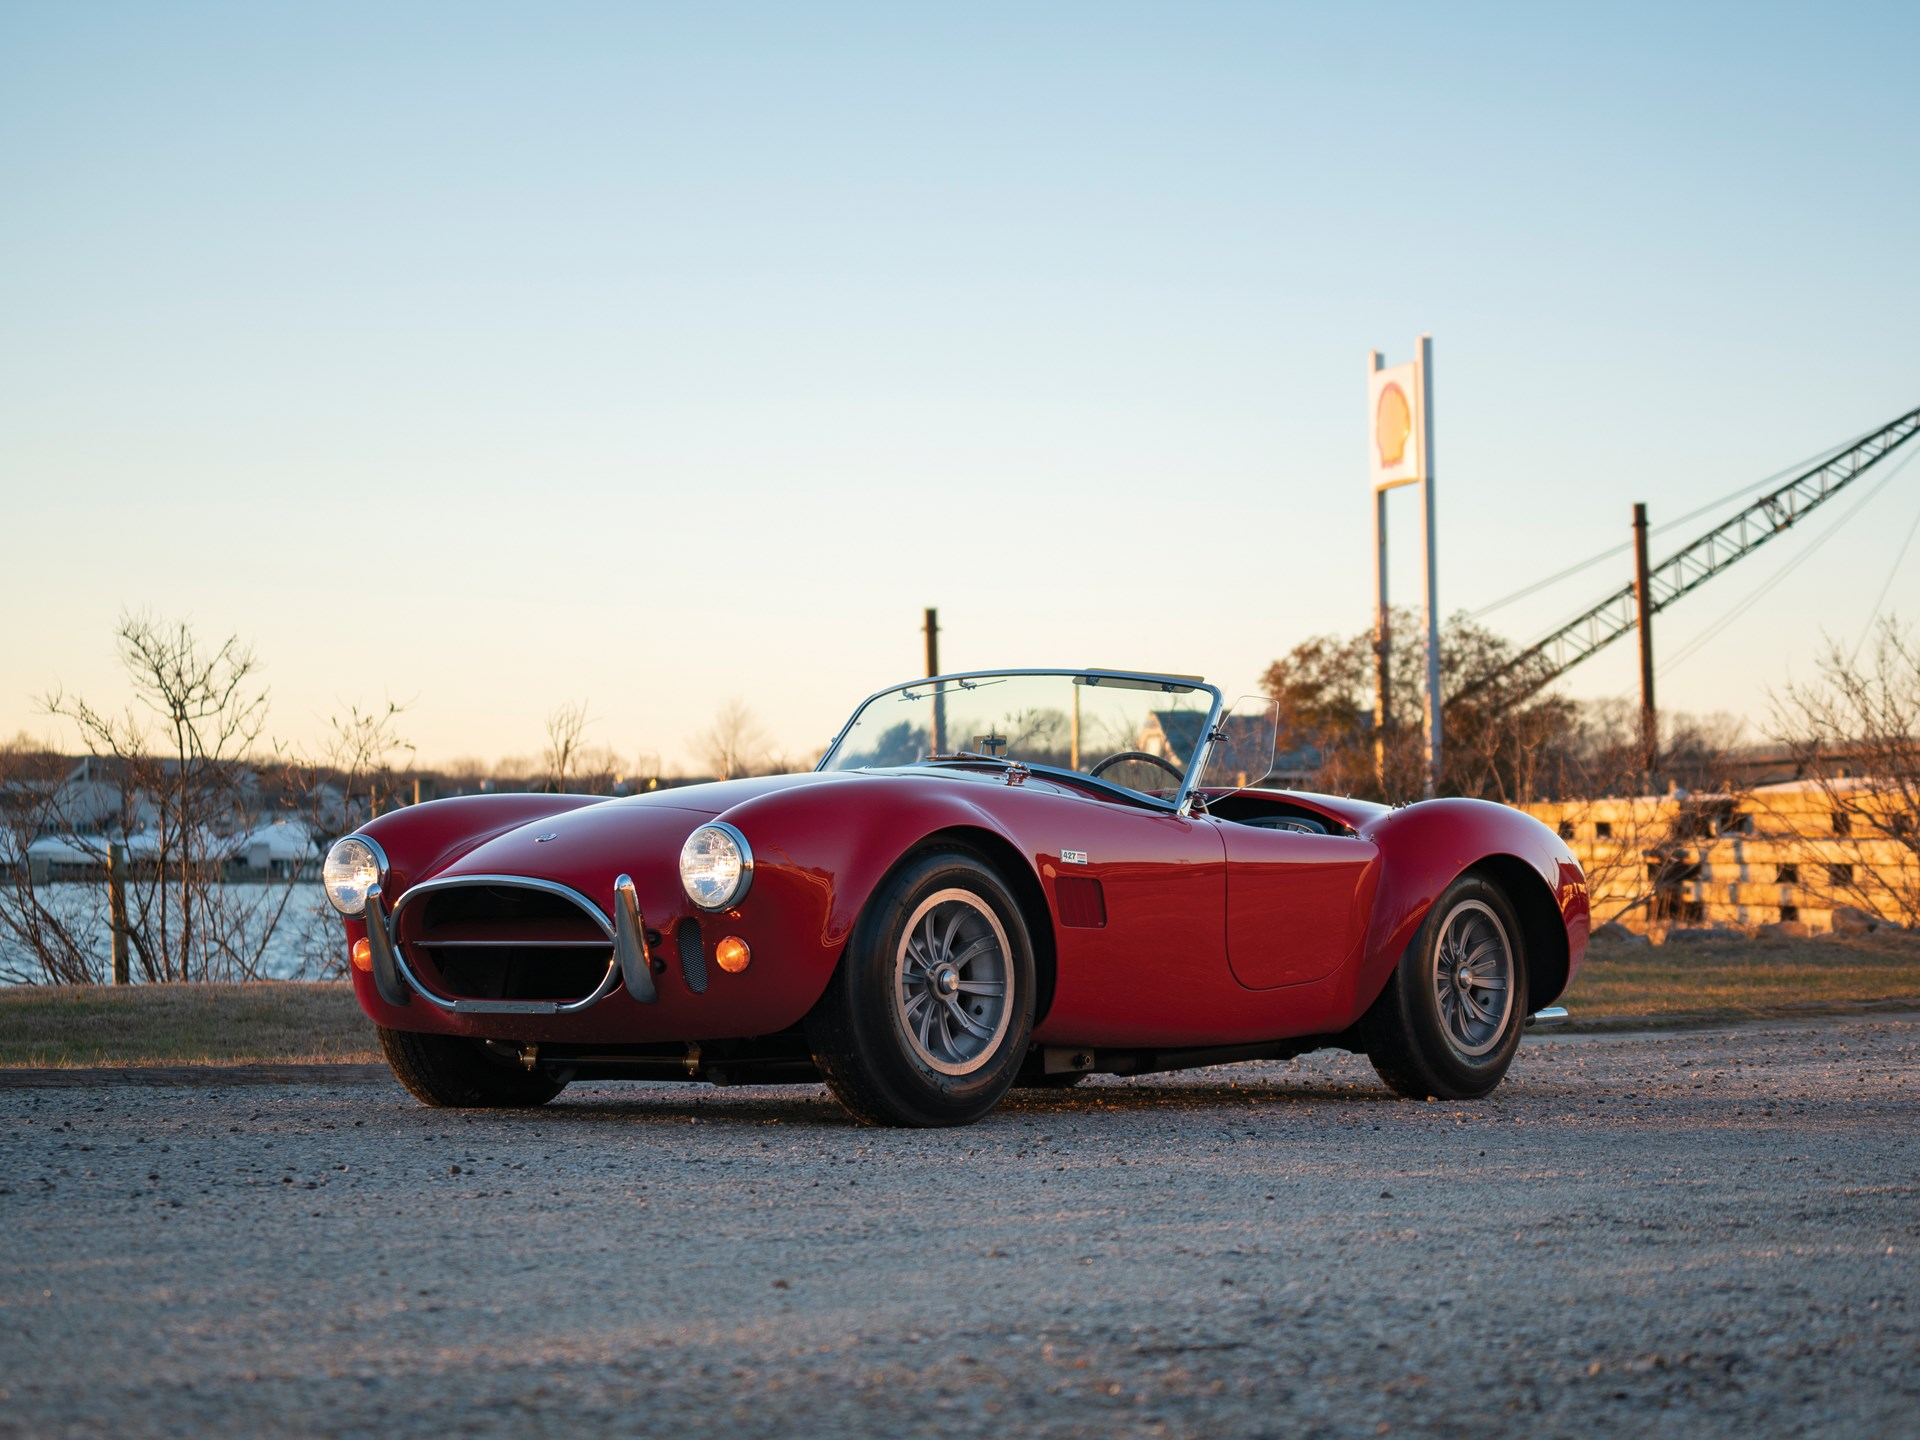 1967 Shelby Cobra 427 Roadster sells for a record $1.8M at Amelia thumbnail